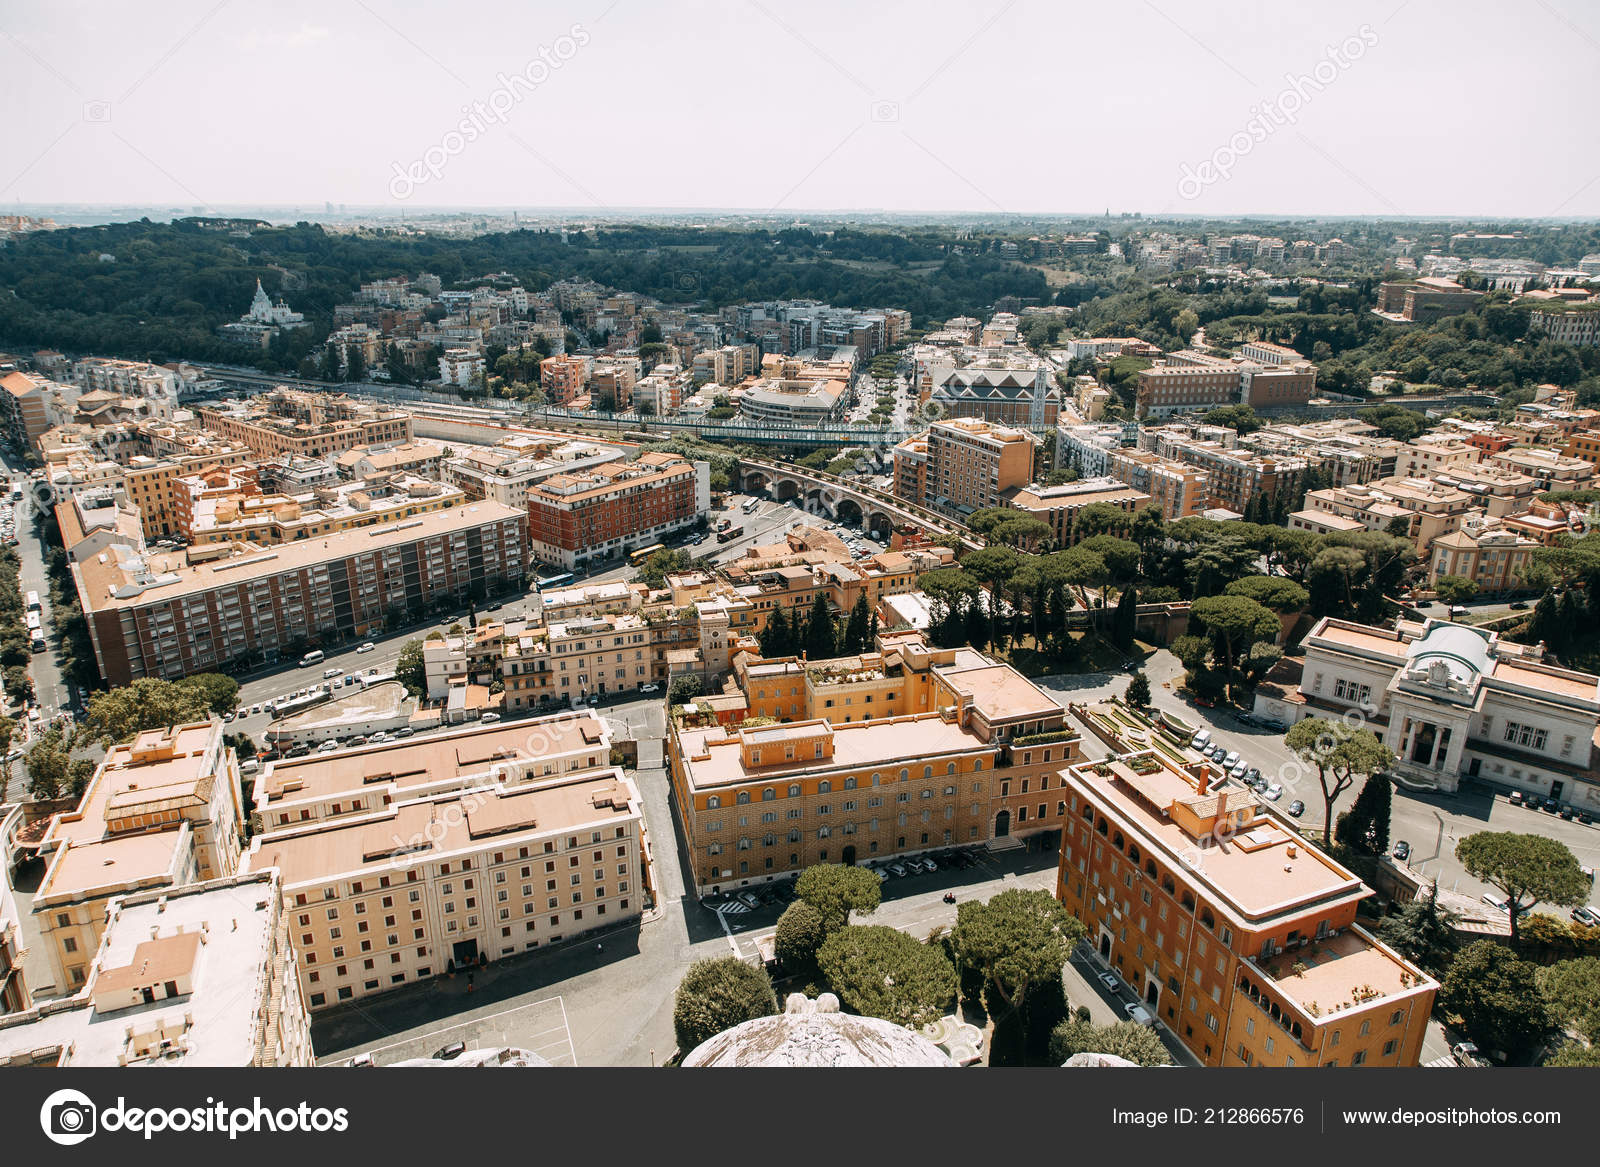 dff5f46b4e5ca3 Vatican City Peter Square View Top Ancient Architecture Rome Sights ...